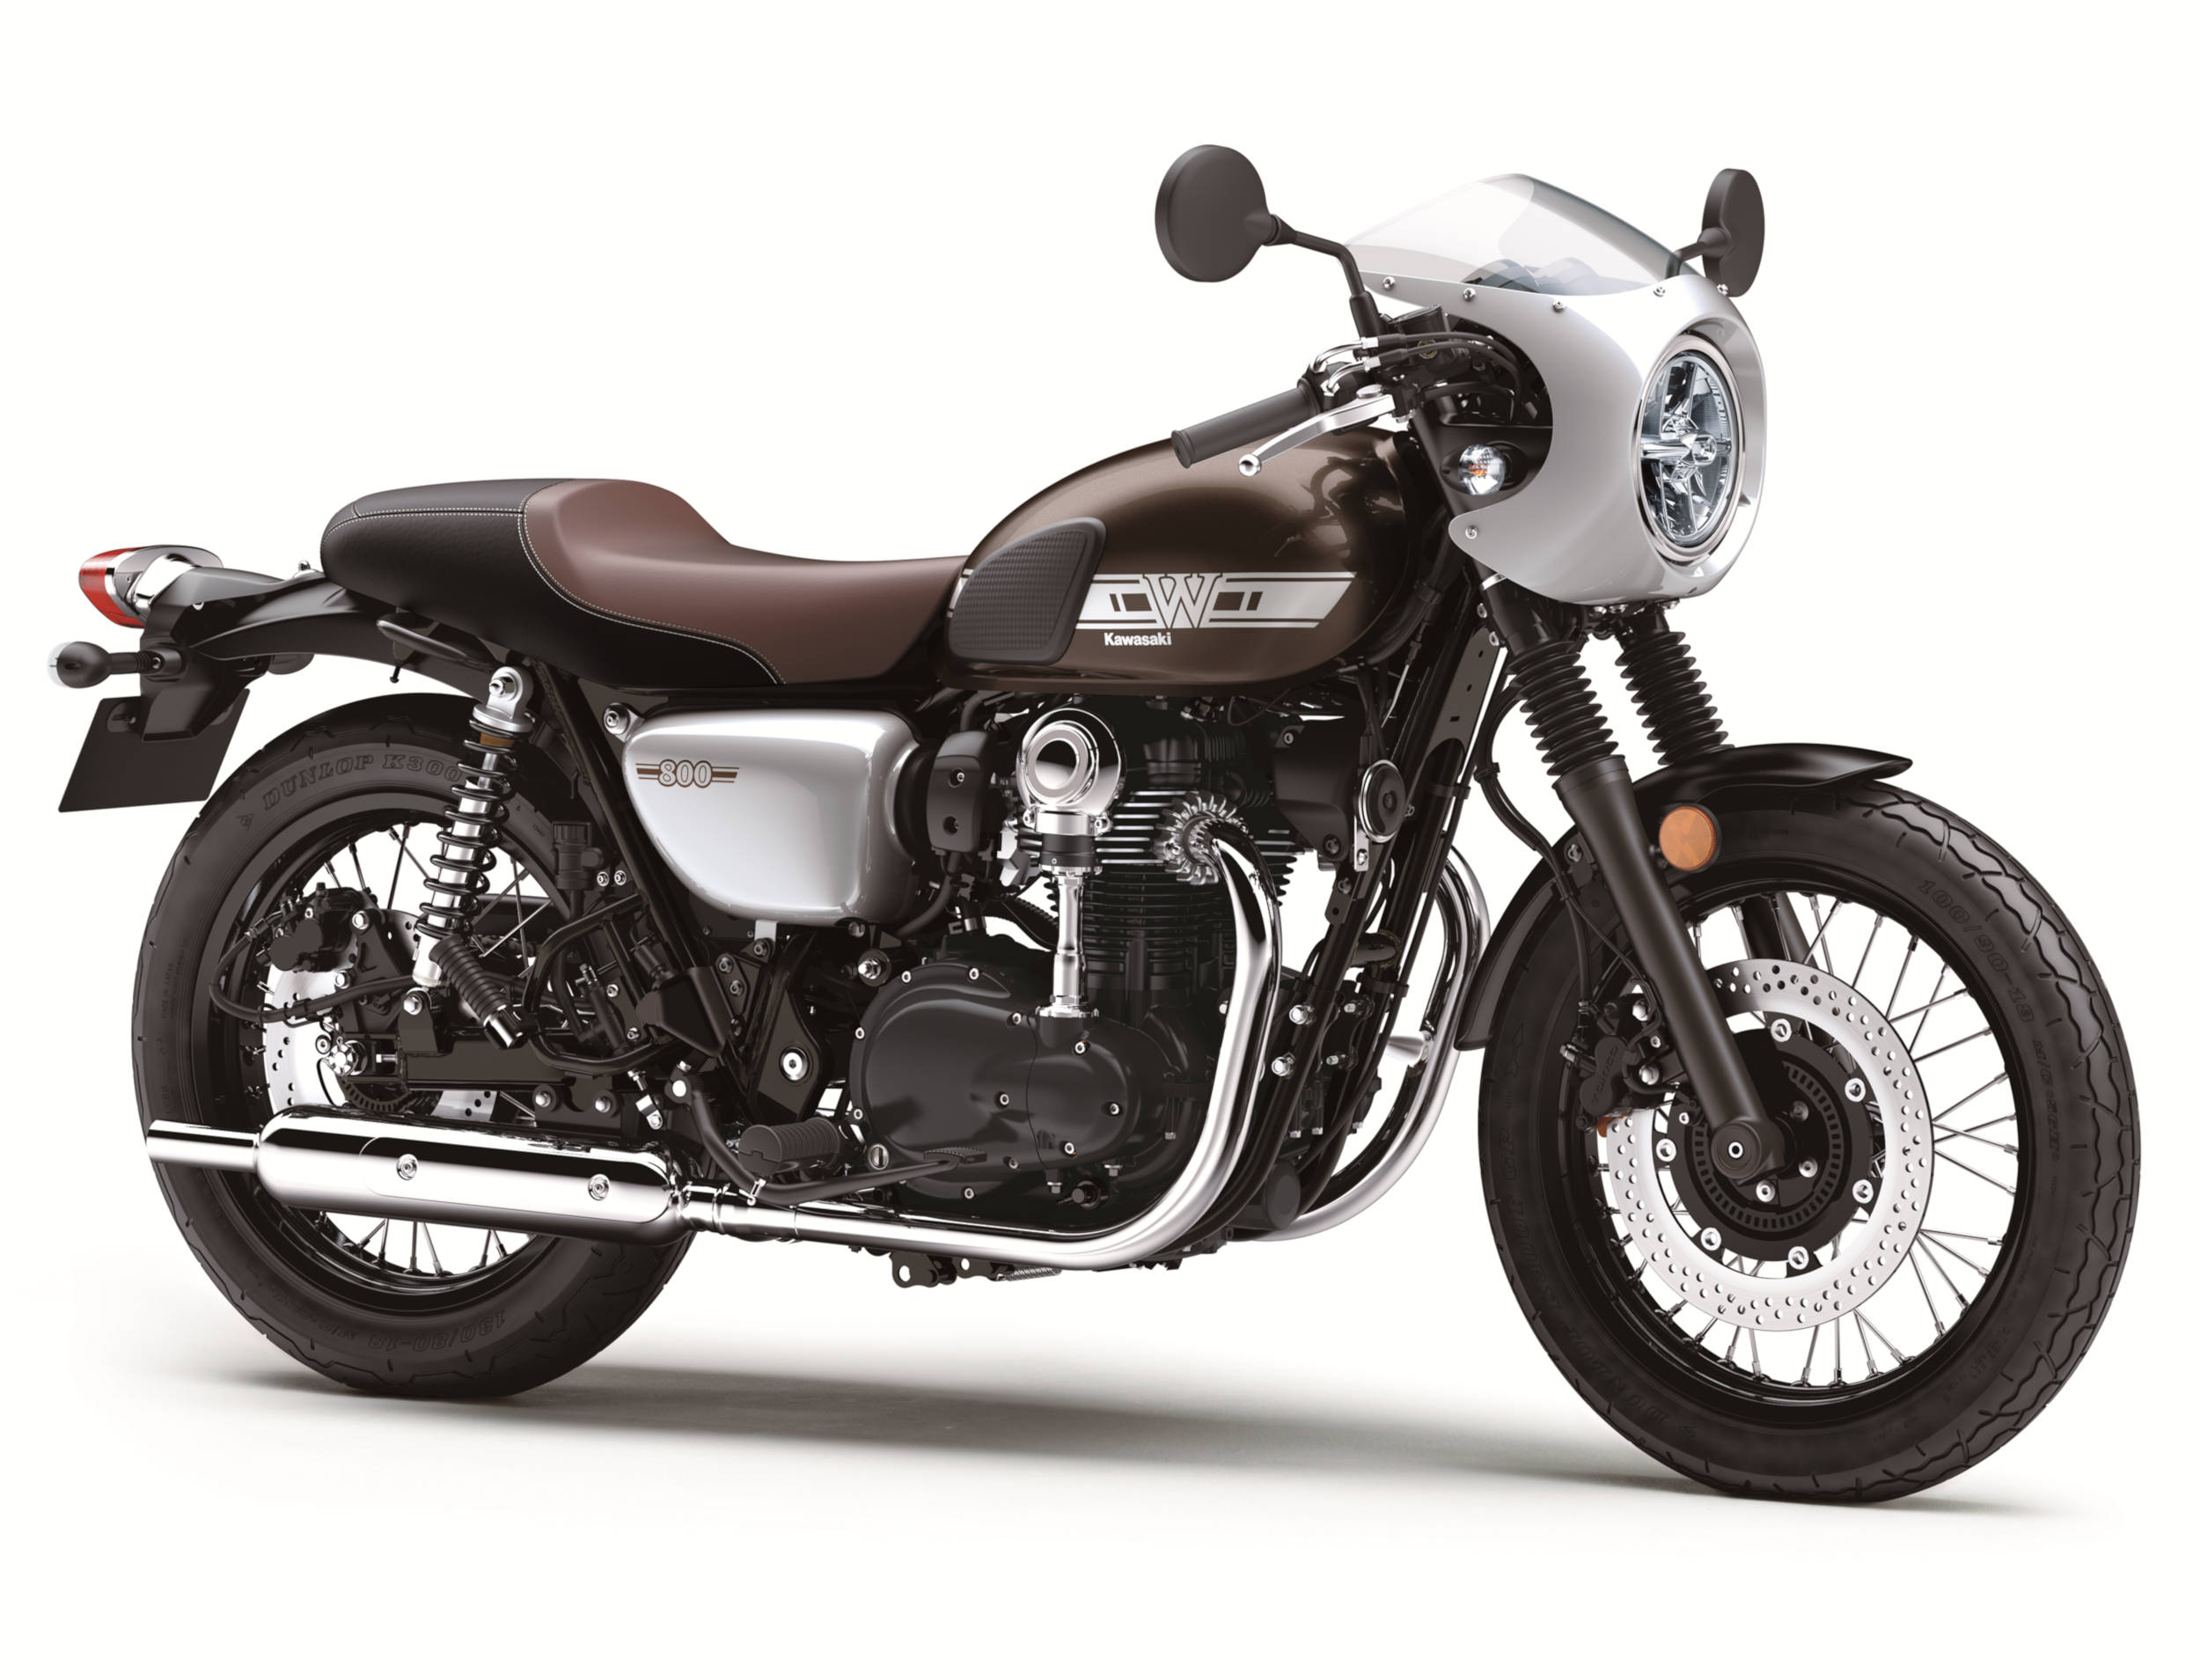 Kawasaki Brings Back Classic W800 For 2019 As A Cafe Racer